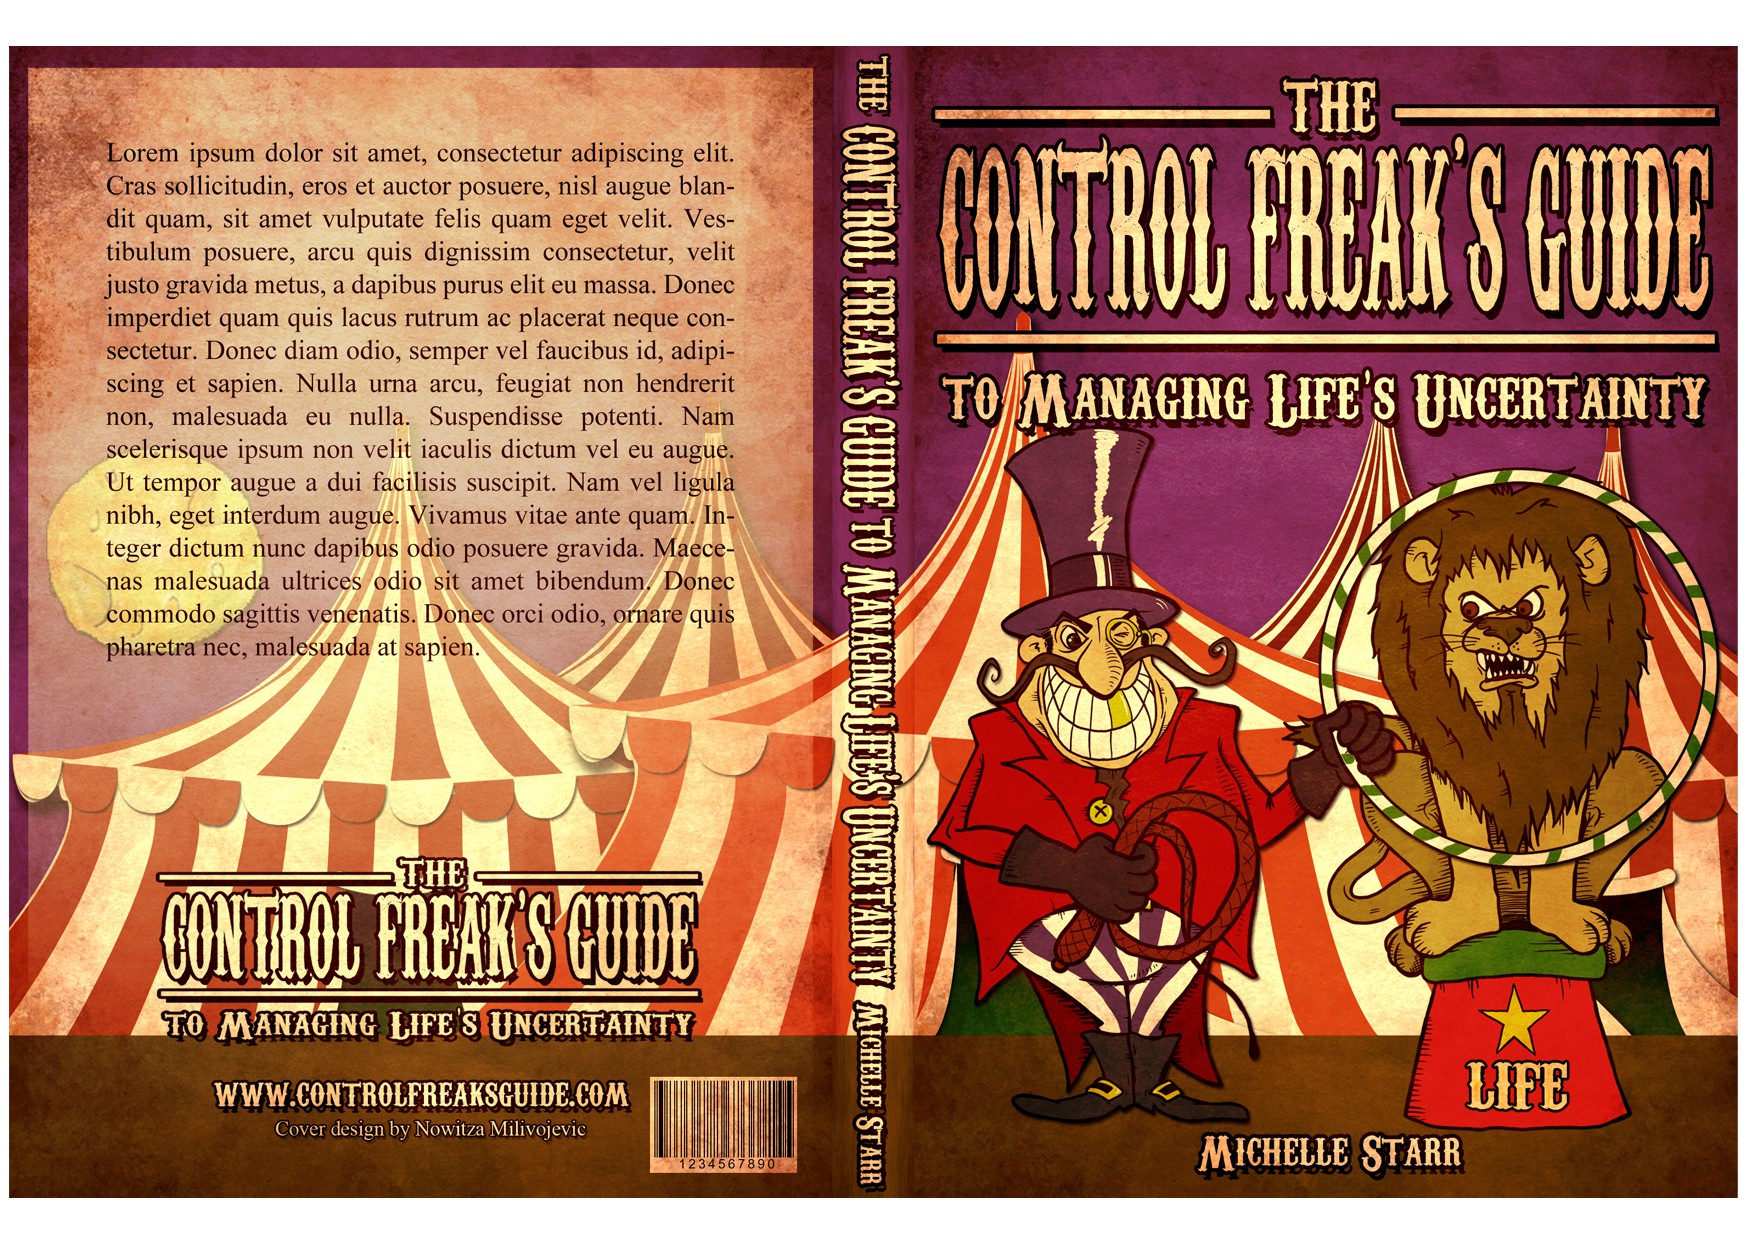 Create a humorous book cover (illustration) for Indie Author